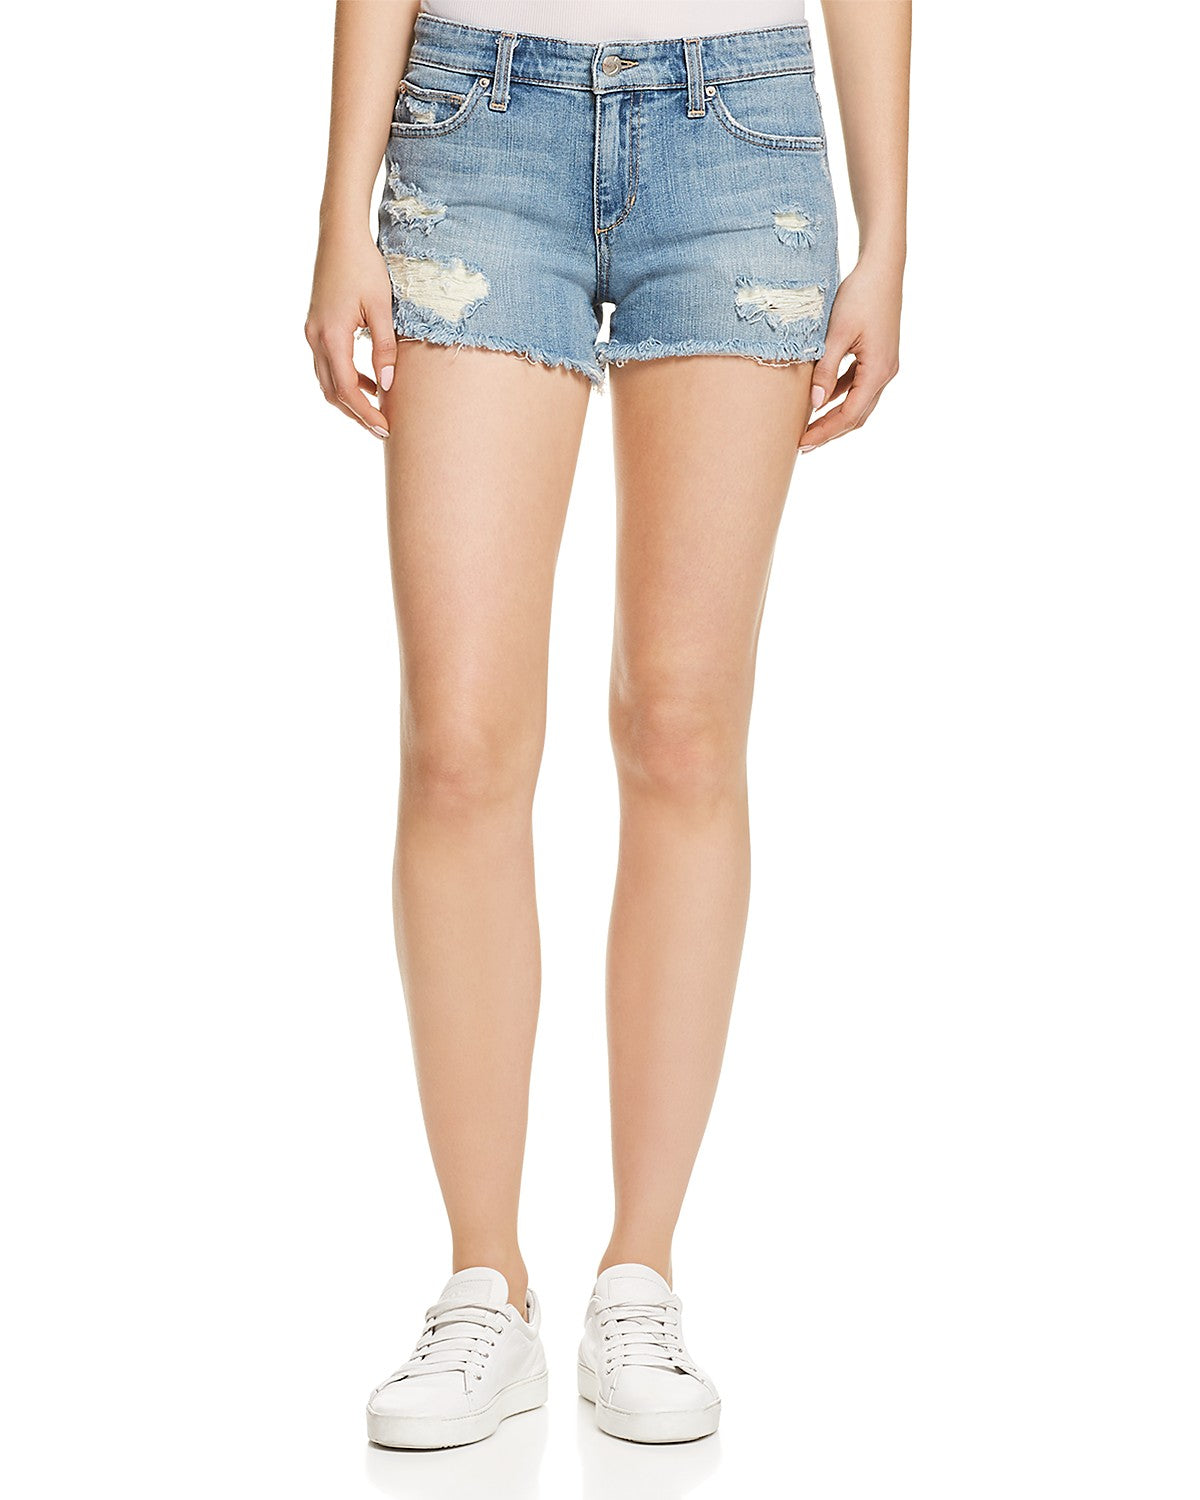 Joe's Jeans The Ozzie Short in Bexley DCABXY4860